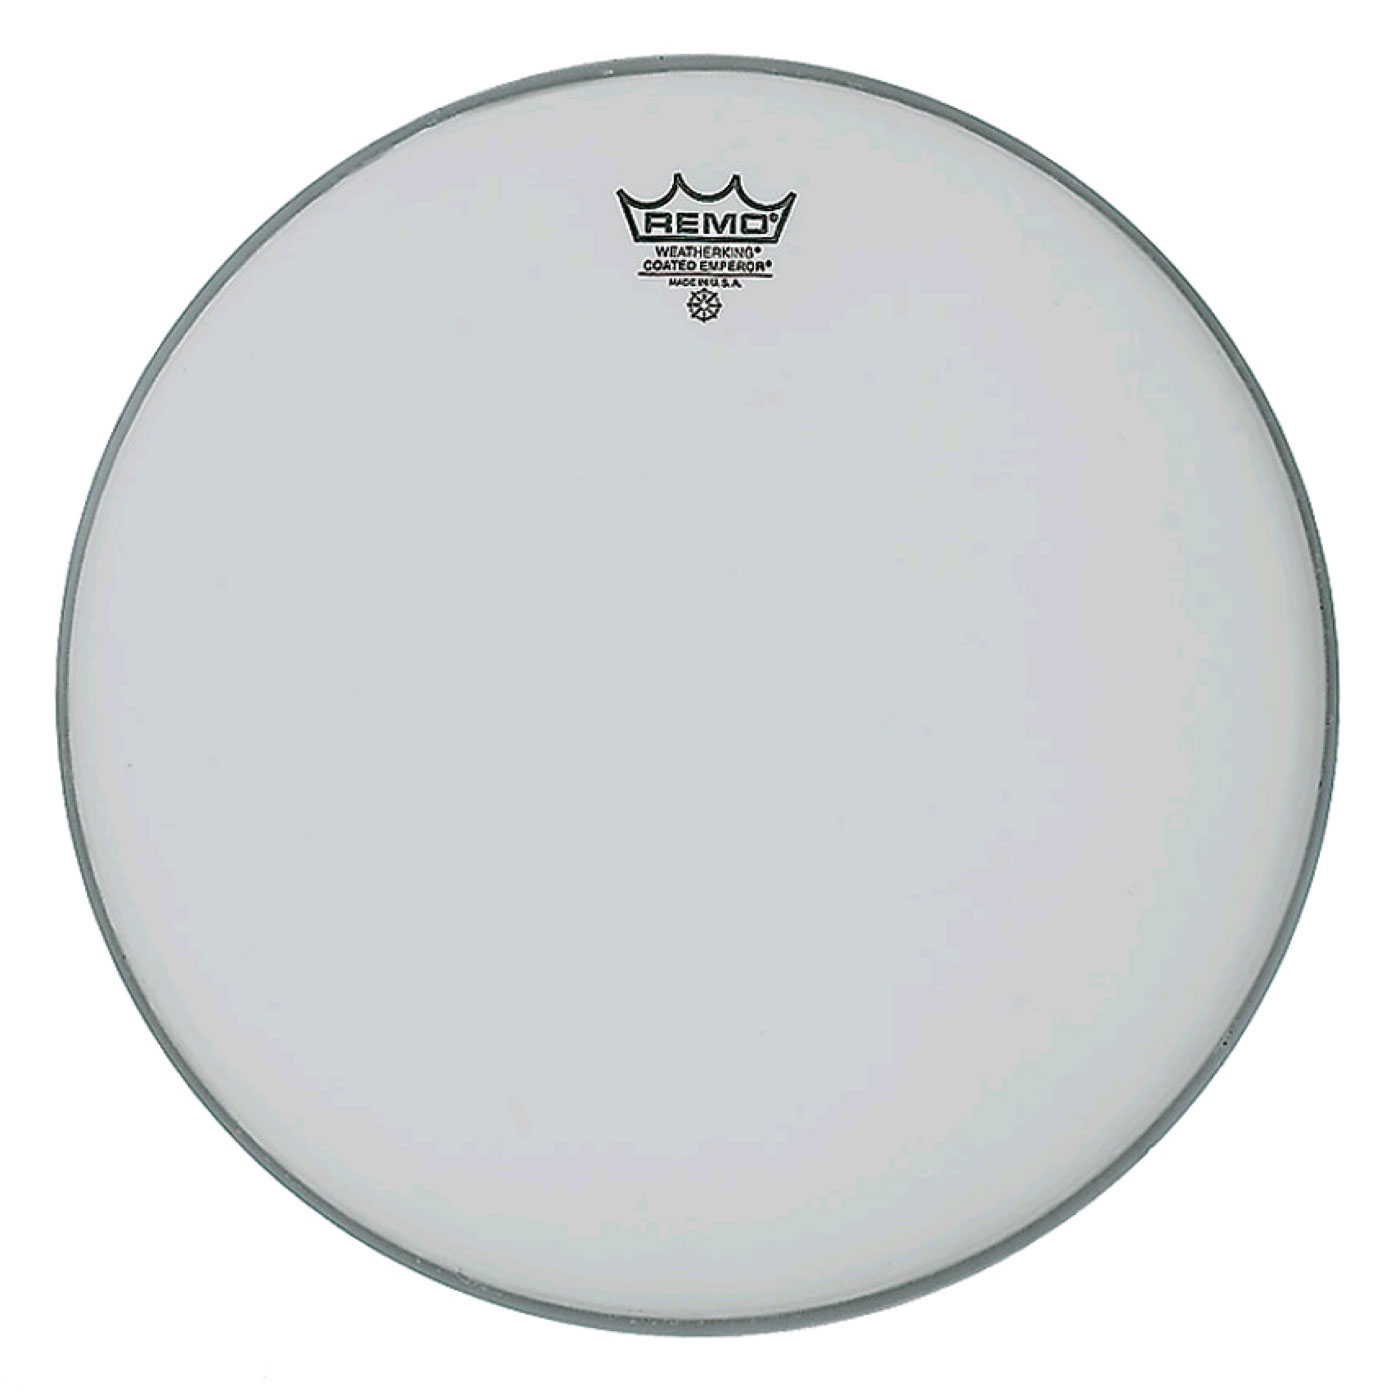 "Remo 8"" Emperor Coated Drum Head"